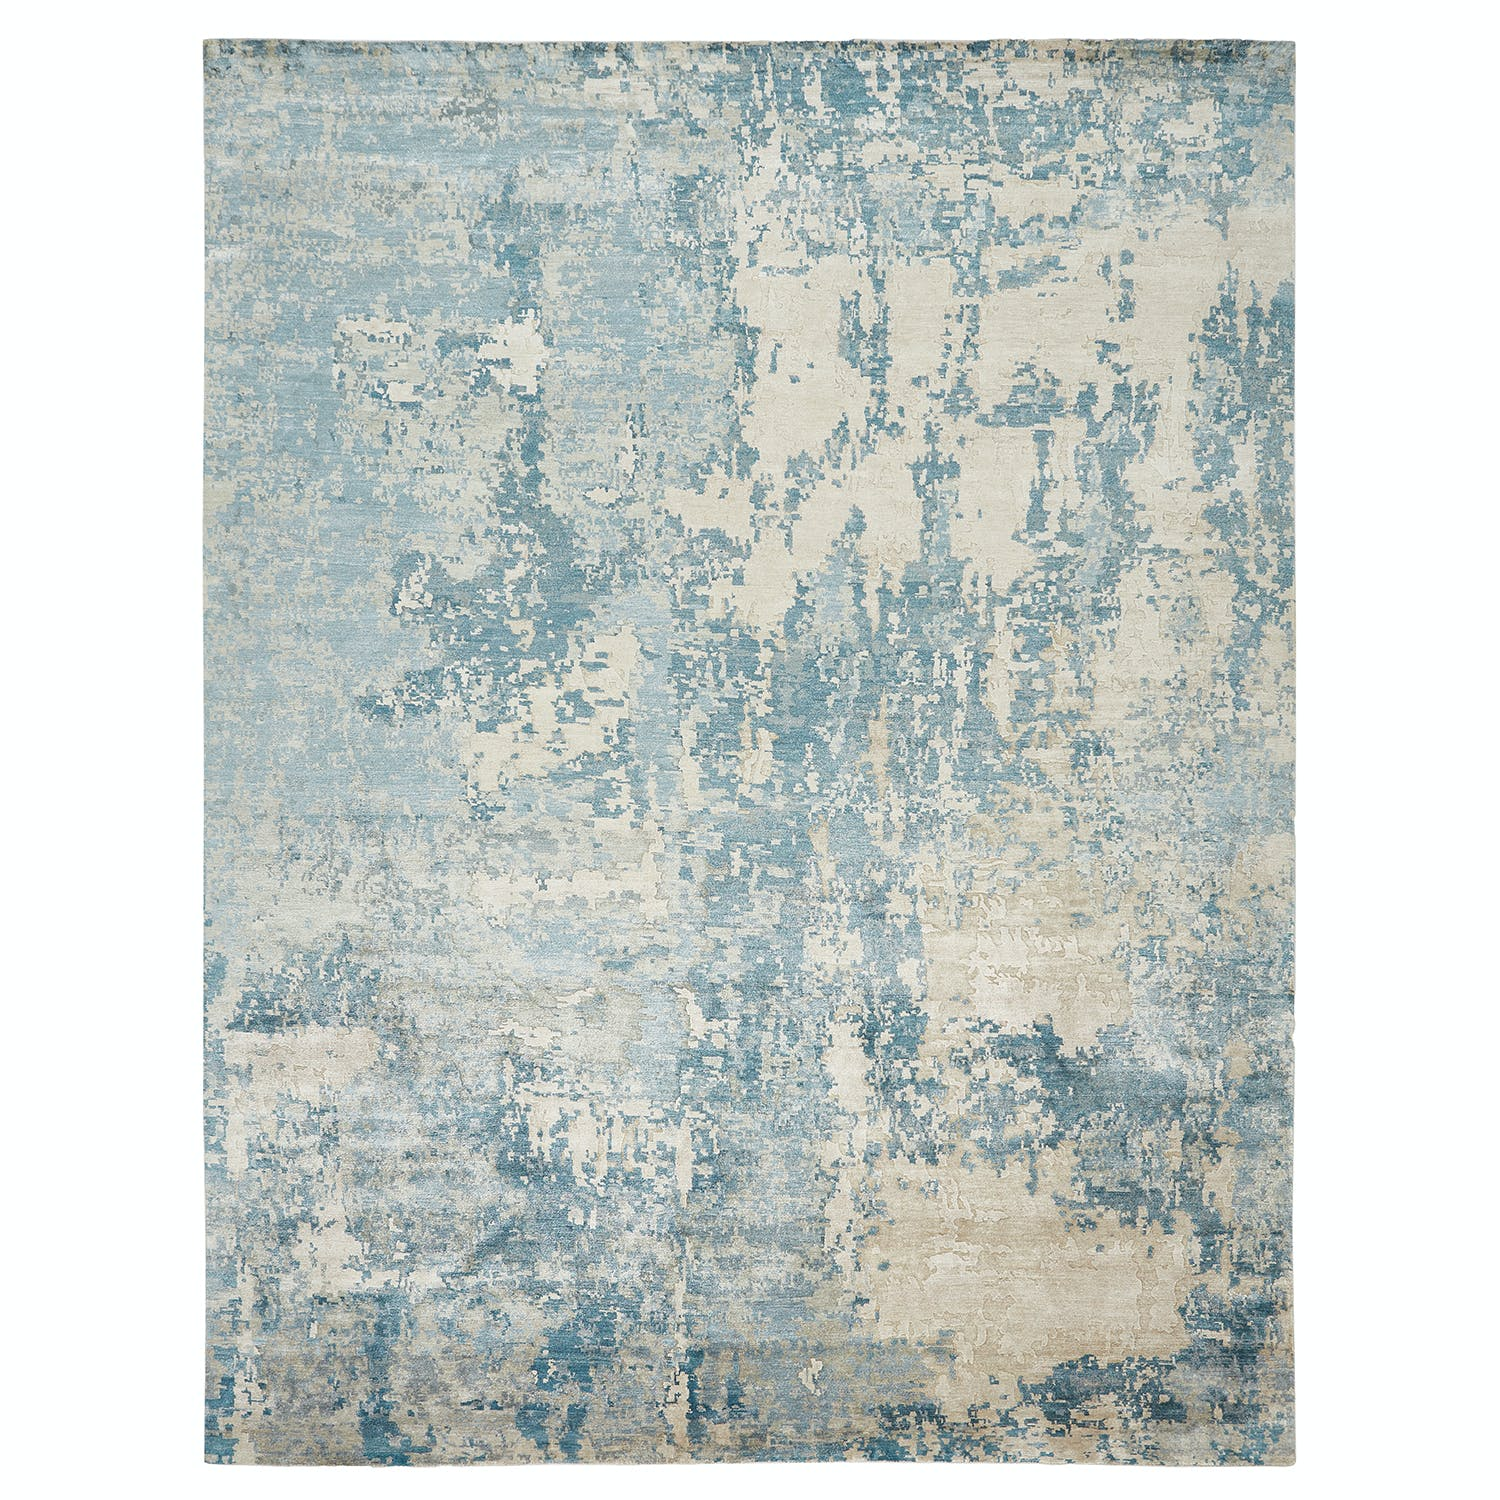 Contemporary Abstract Rug-12'x16'